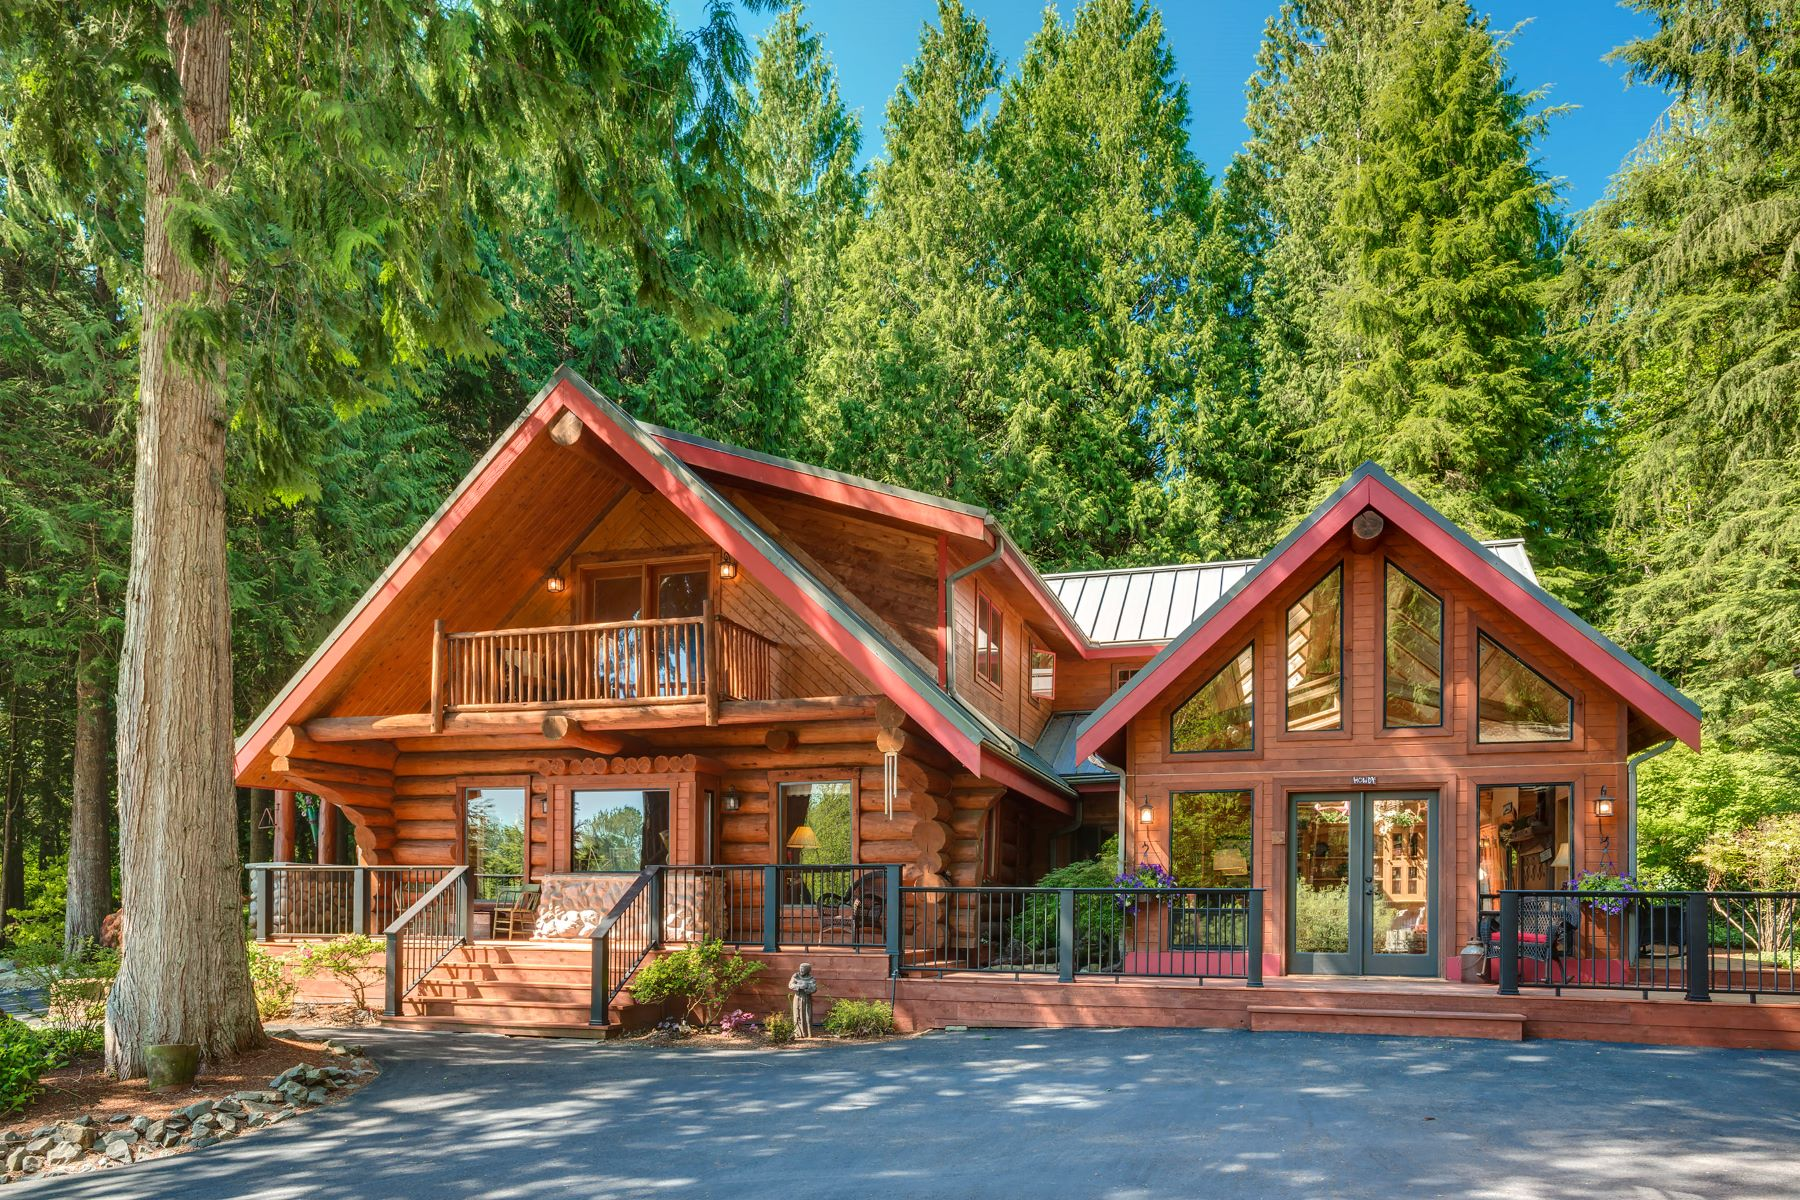 Single Family Home for Sale at Snohomish Equestrian Lodge 17317 OK Mill Rd Snohomish, Washington 98290 United States